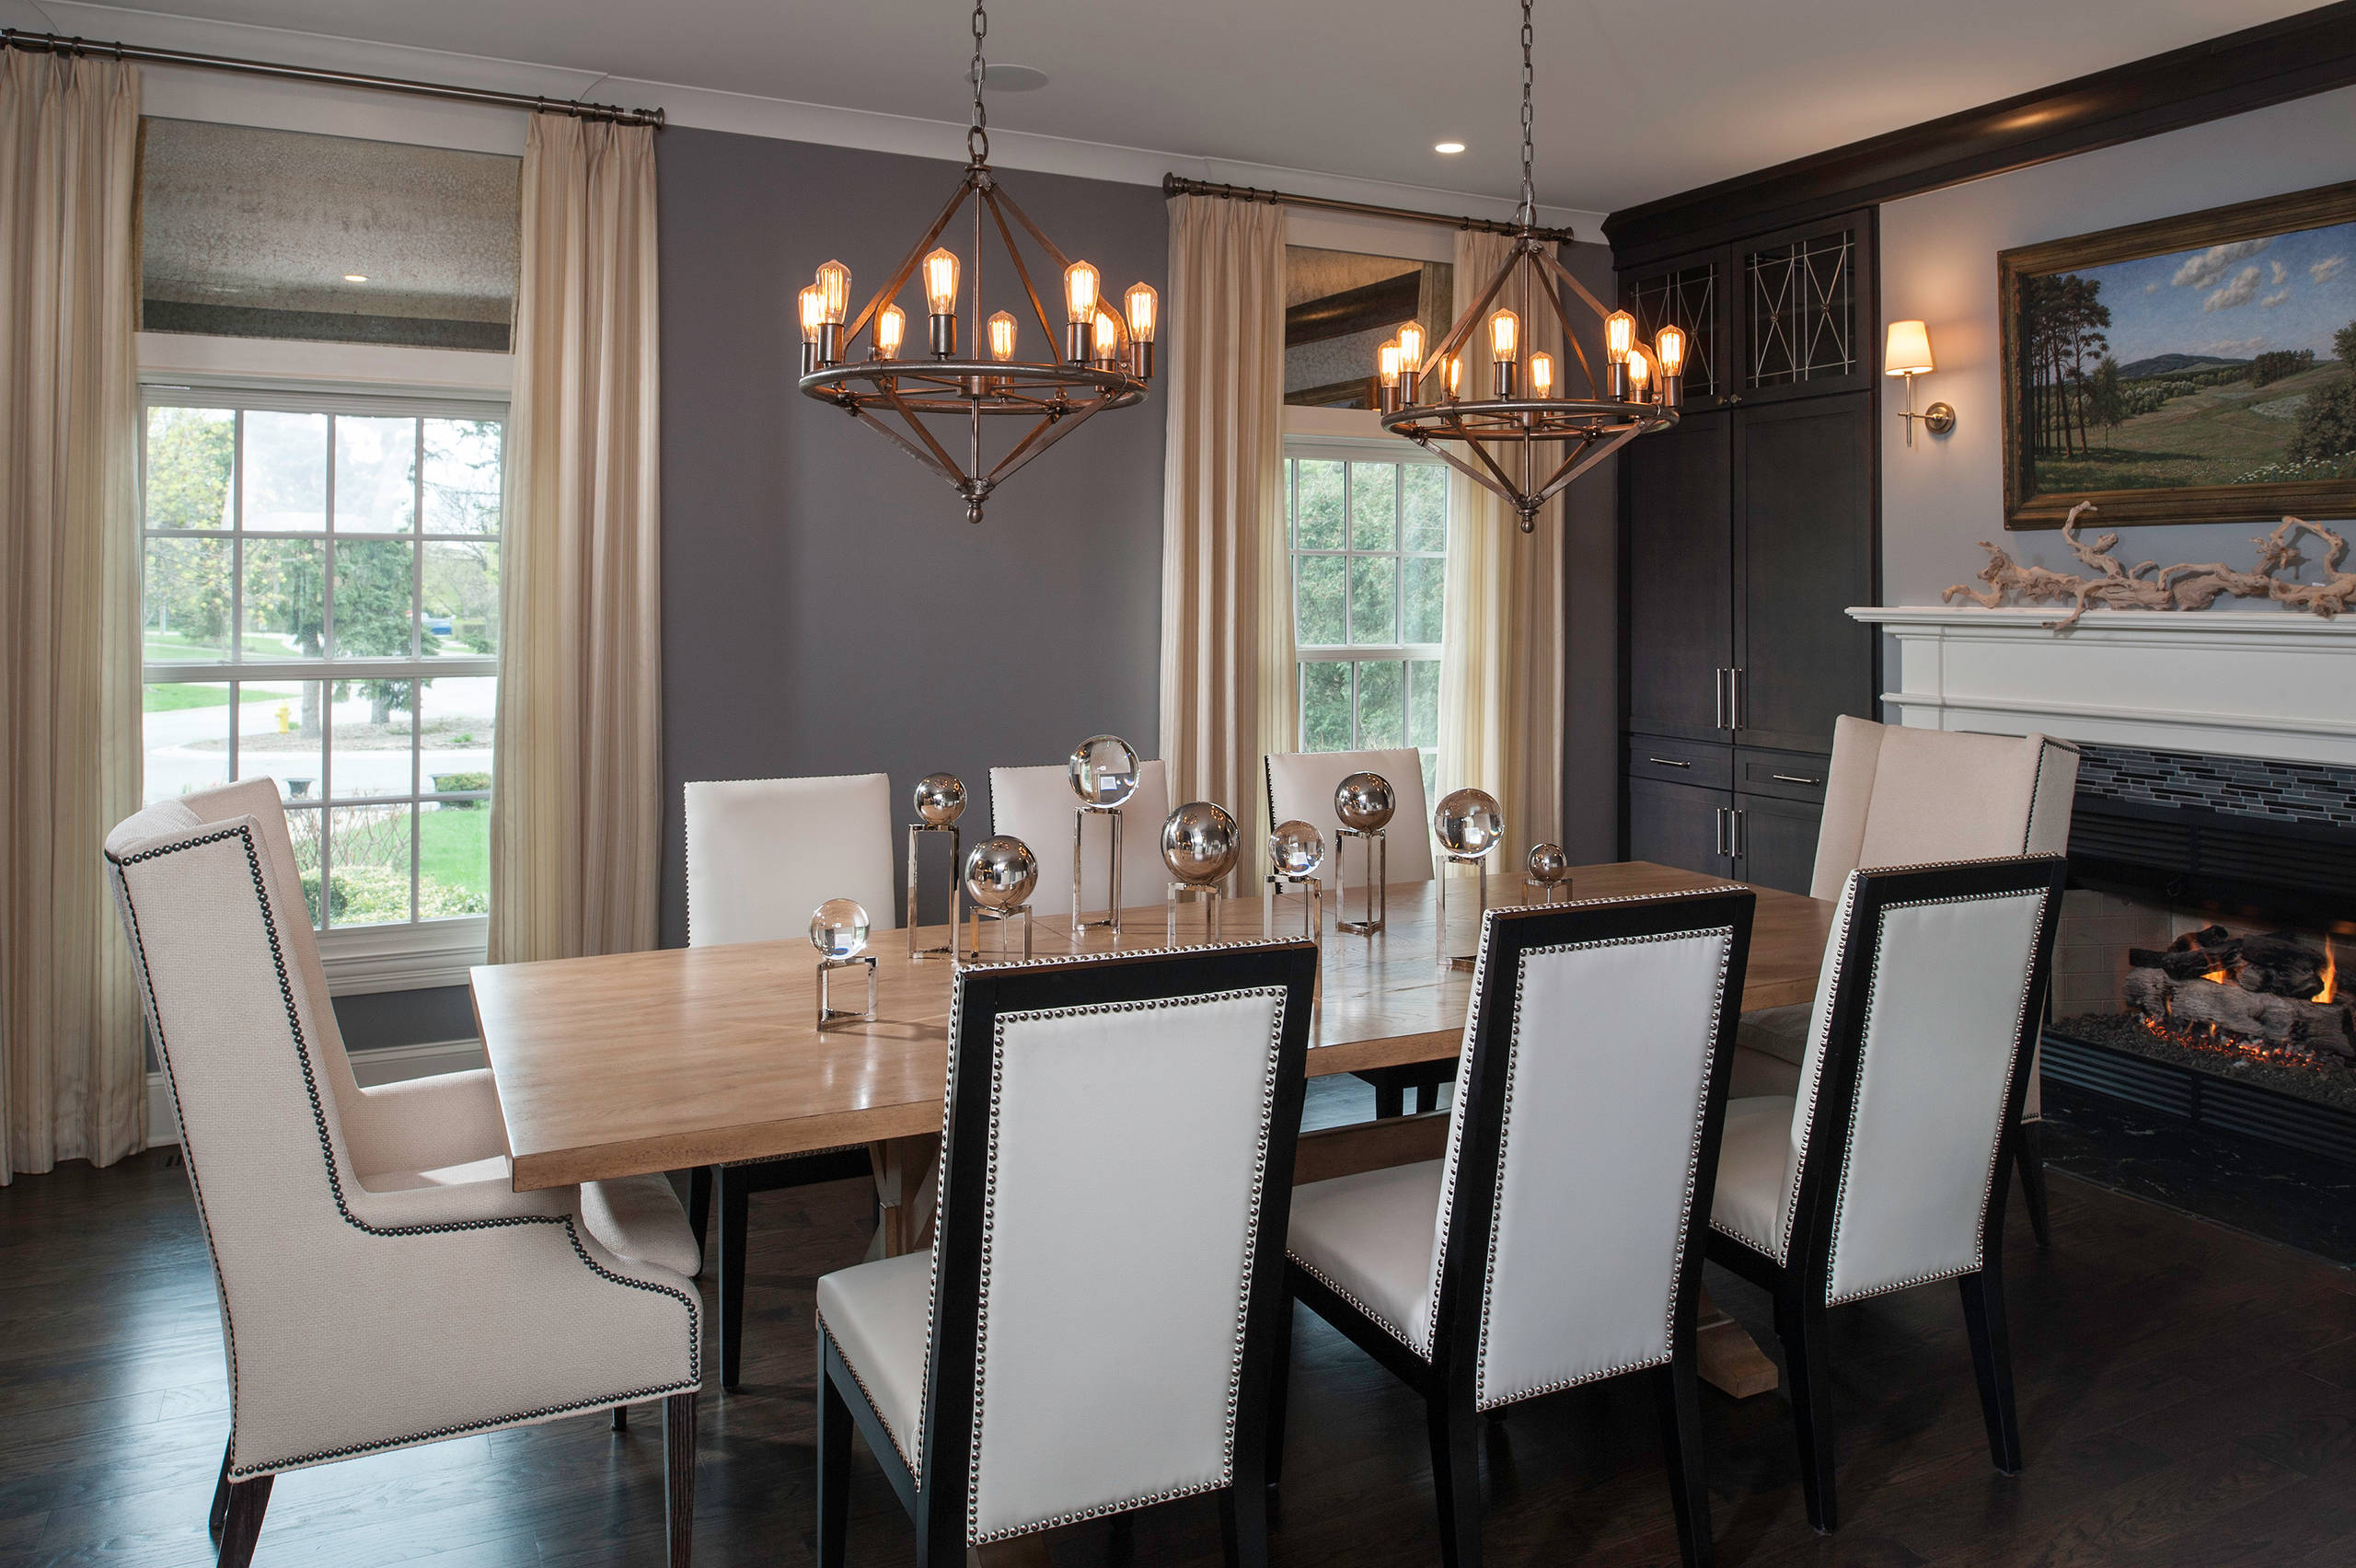 Captains Chairs Dining Room Off 54, Captain Chairs For Dining Room